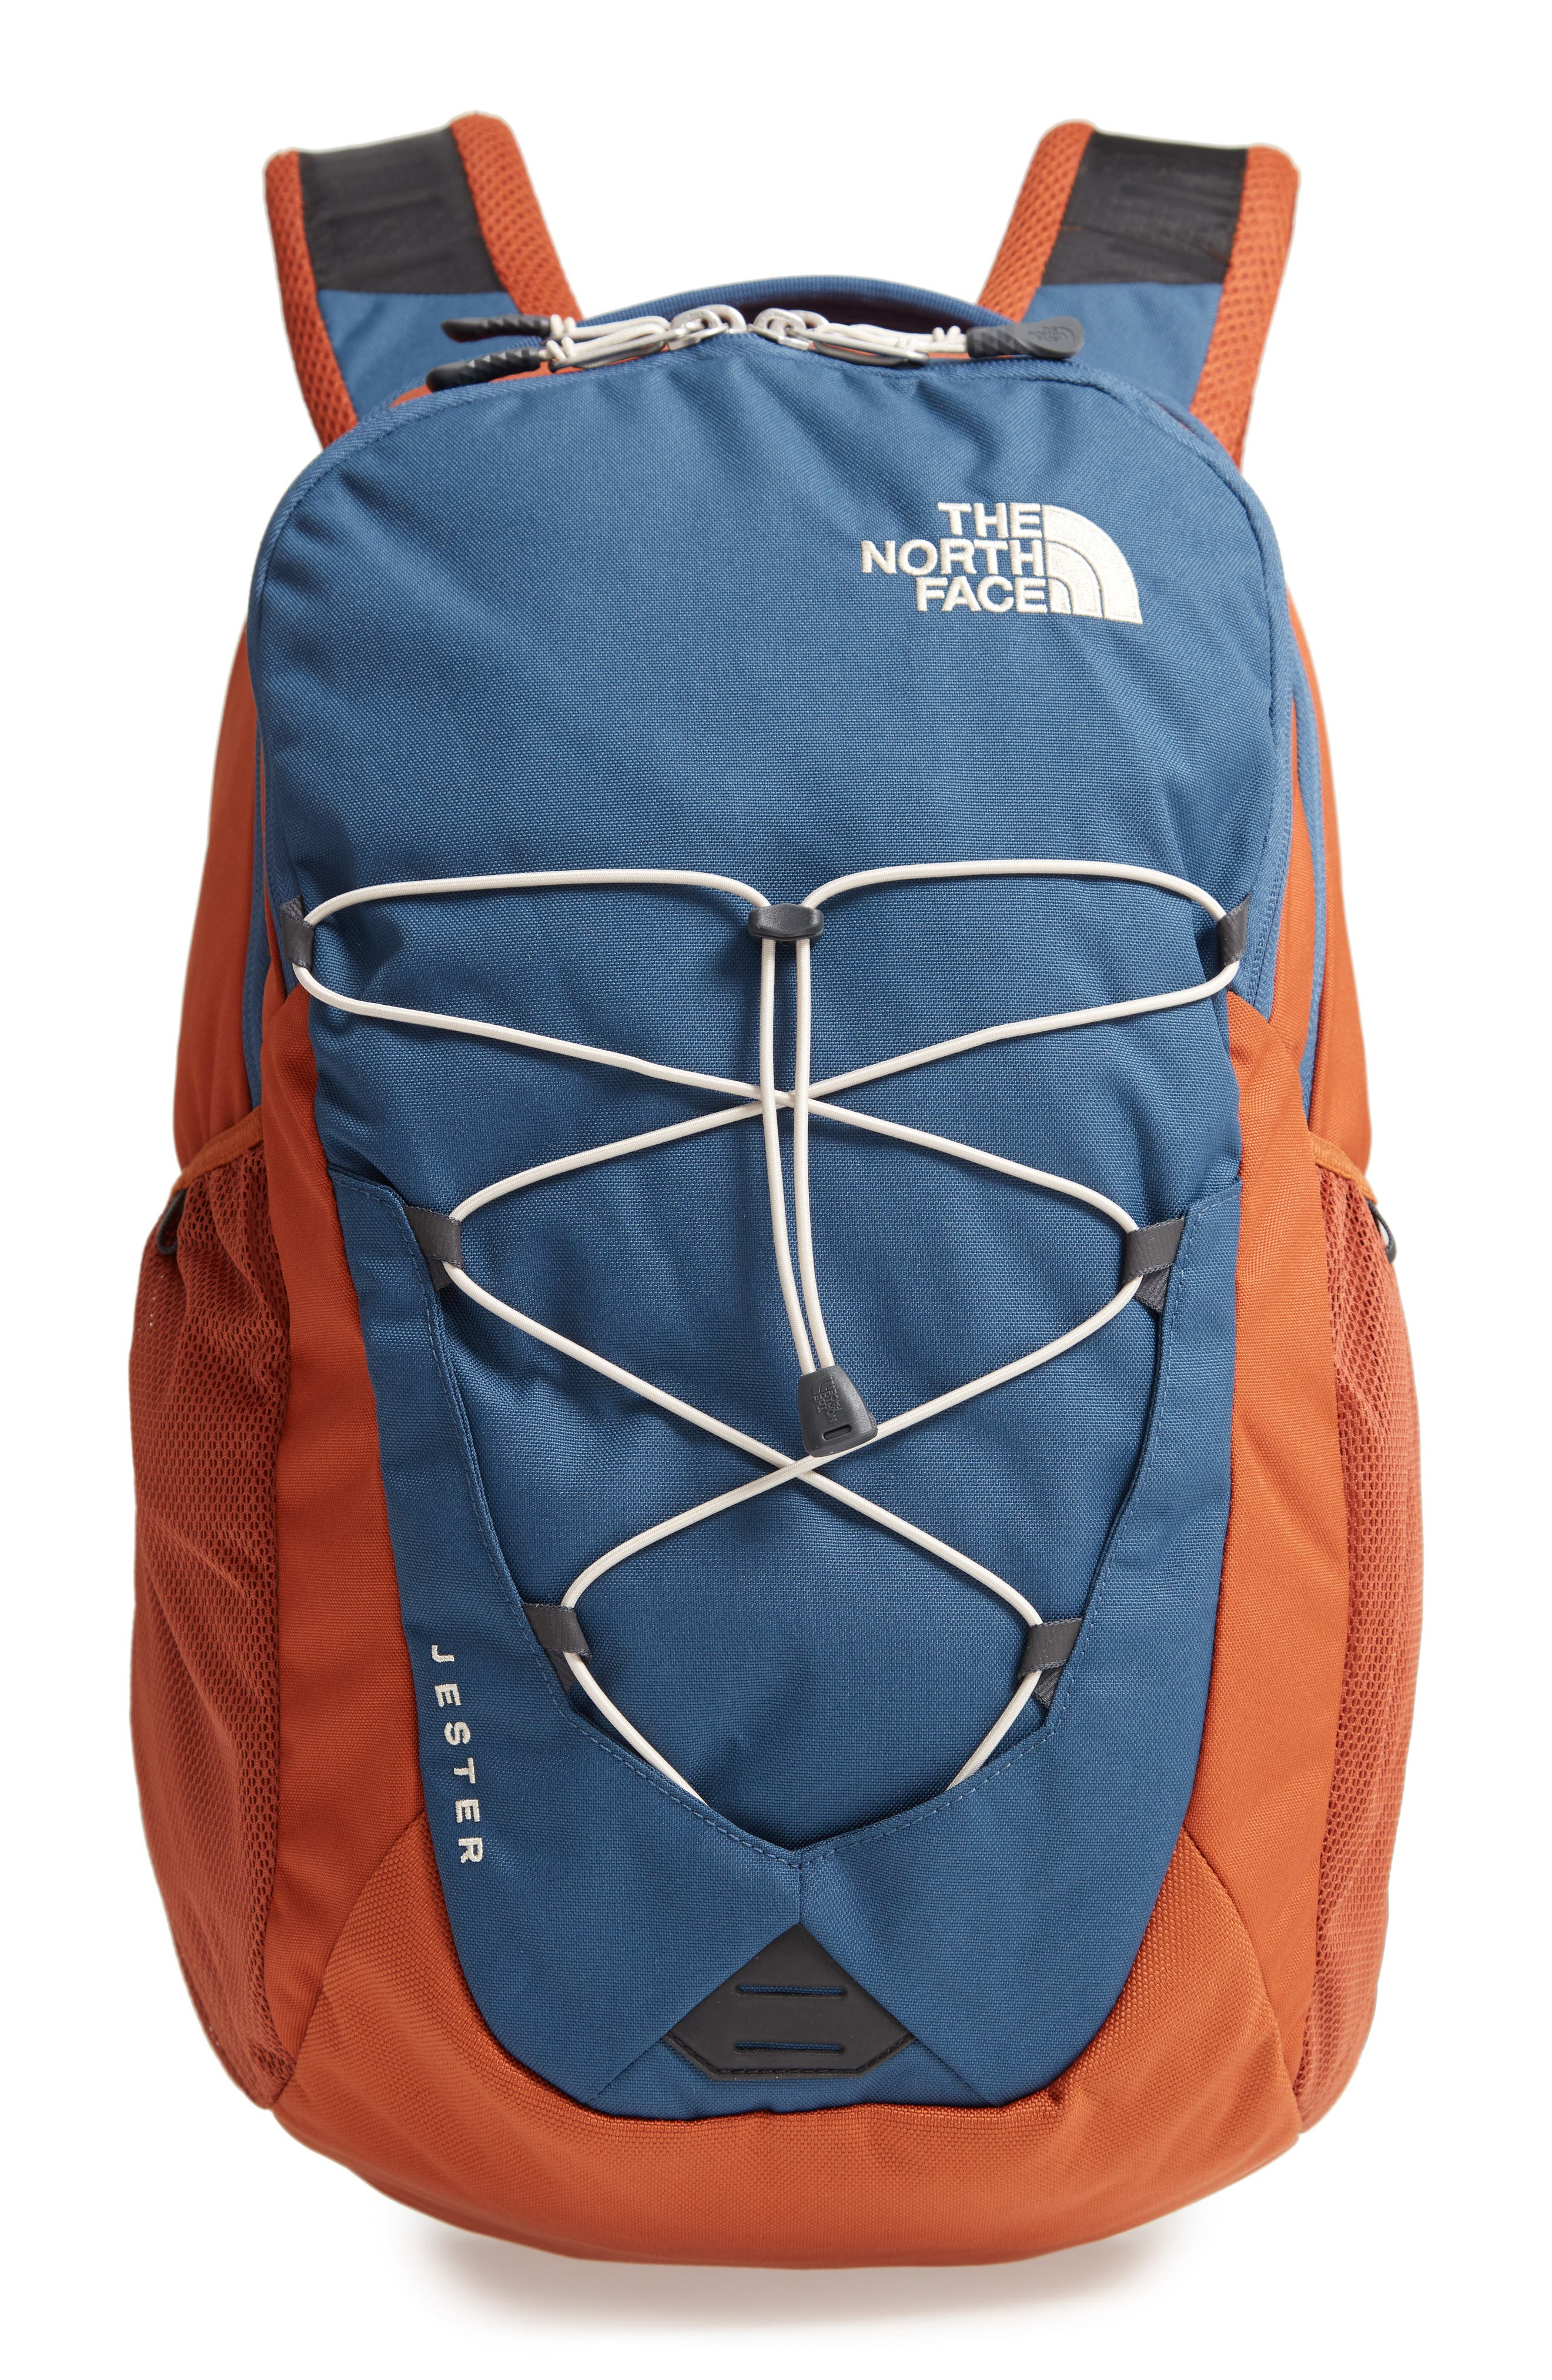 The North Face Jester Backpack -